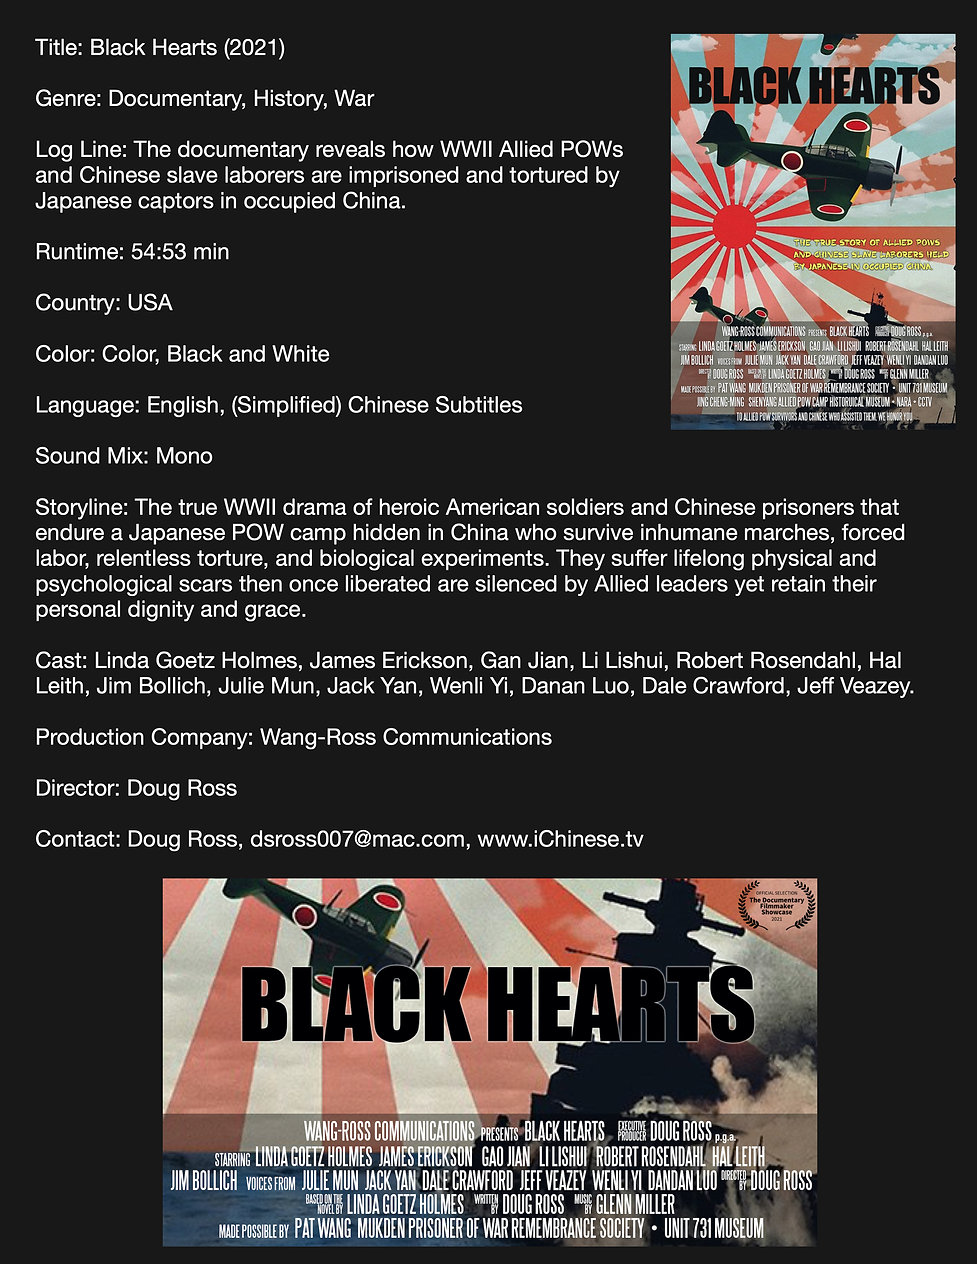 Black Hearts (One-page).jpg